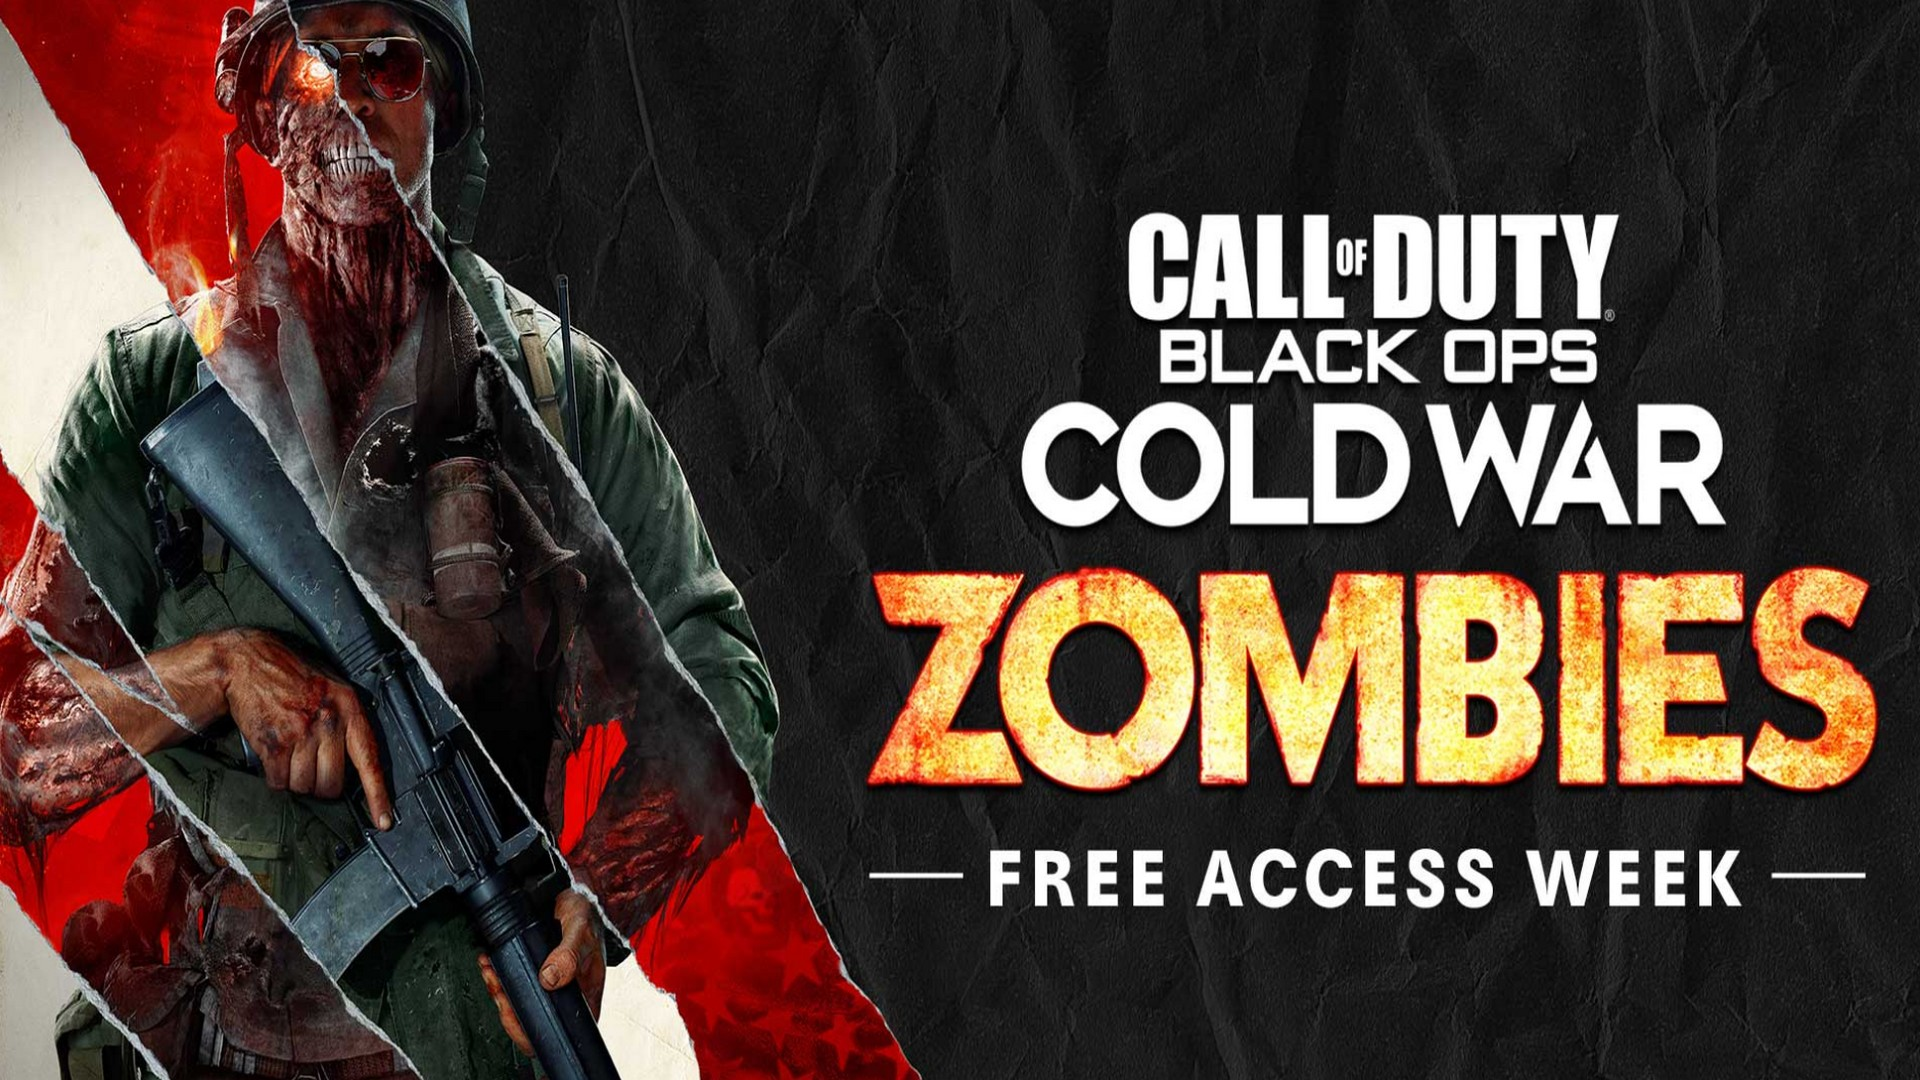 Call of Duty: Black Ops Cold War Zombies Free Access Week